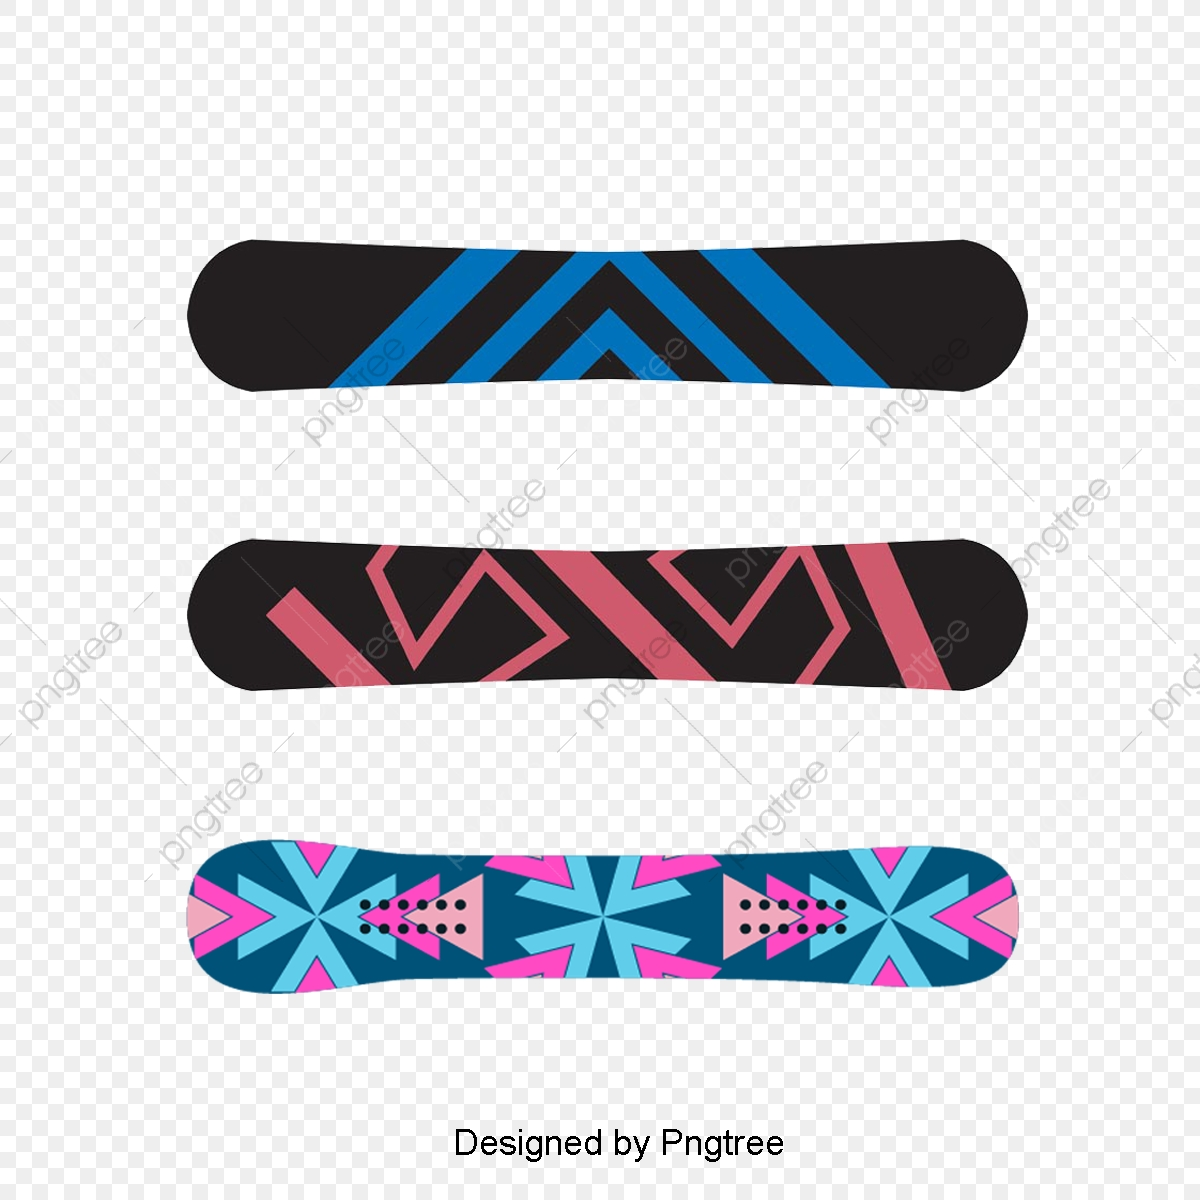 Snowboarding Png Vector Psd And Clipart With Transparent Background For Free Download Pngtree